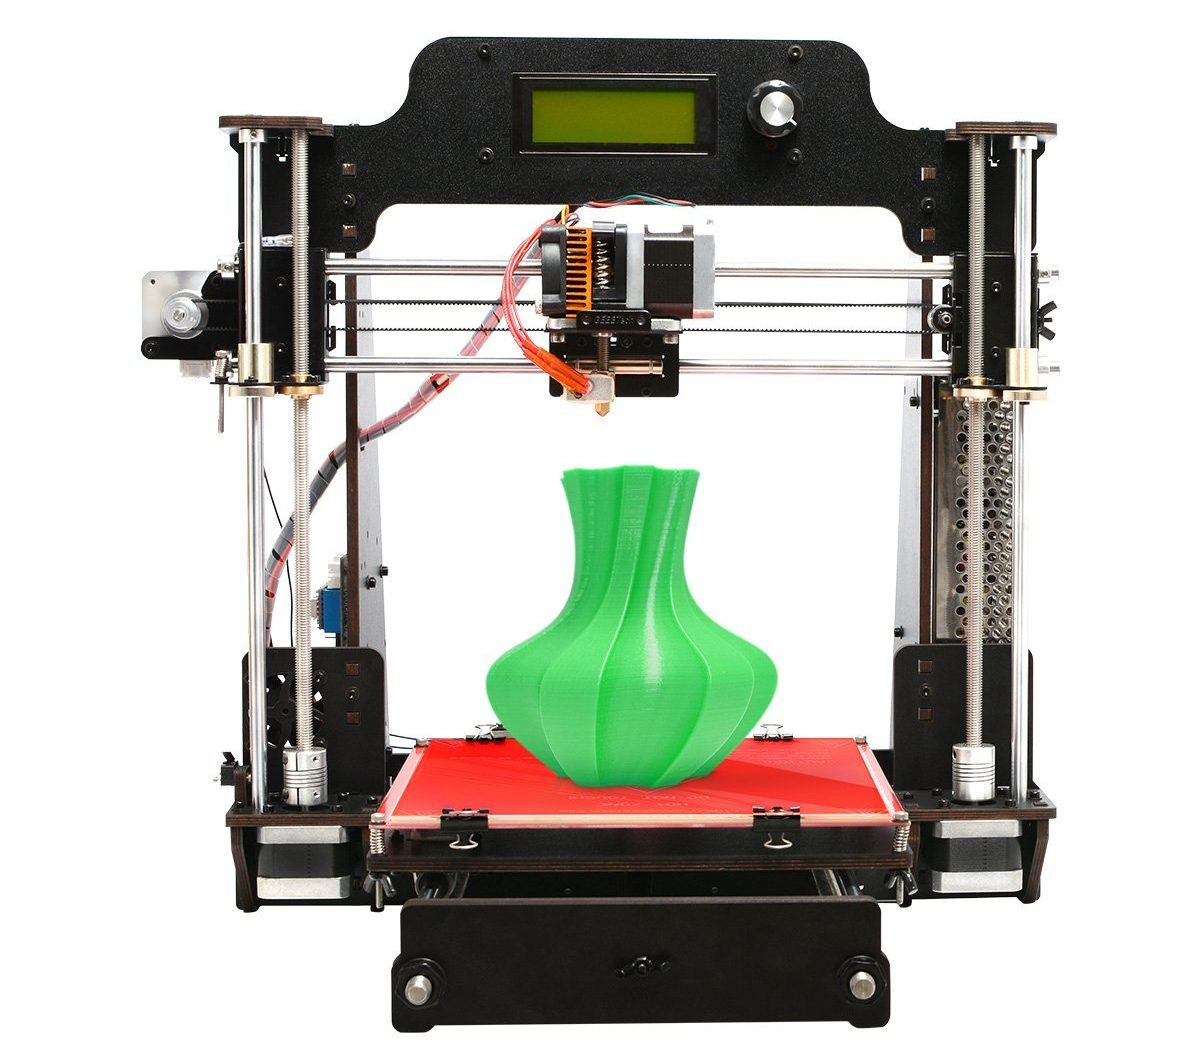 best 3d printer kit, best diy 3d printer, diy 3d printer, 3d printer kit, best cheap 3d printer, cheapest 3d printer